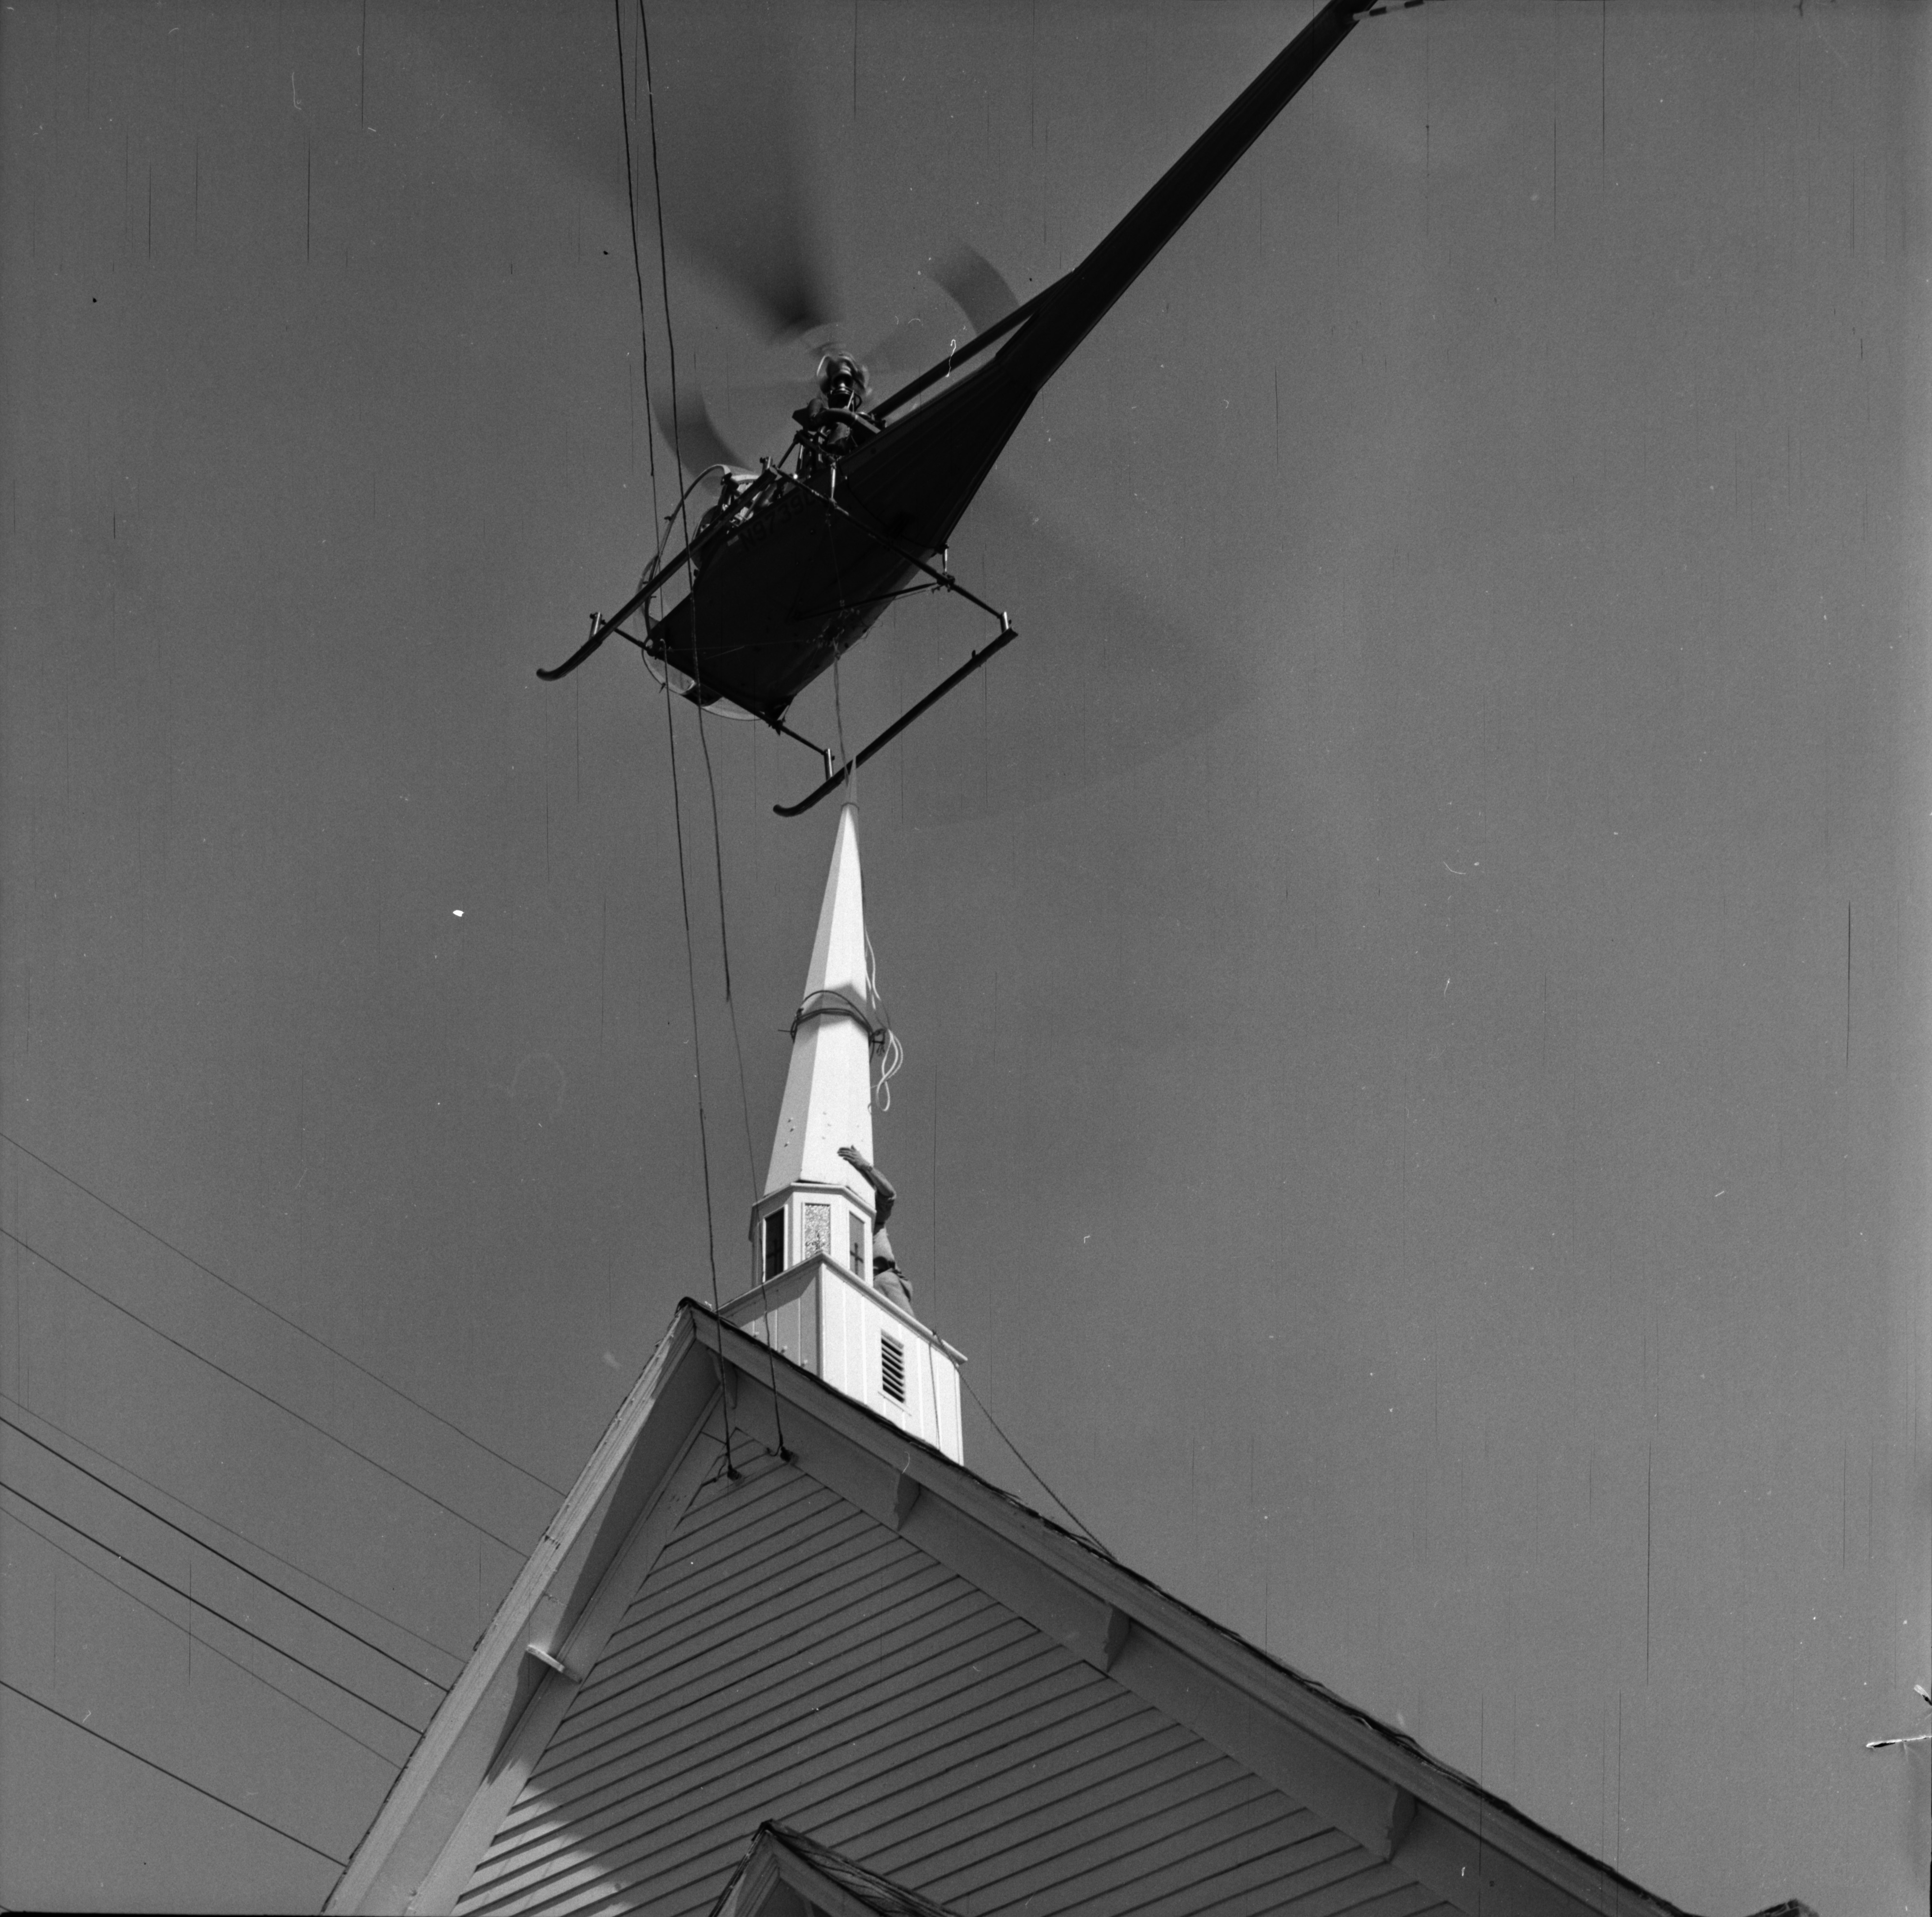 New Steeple Installed with Helicopter at Bethesda Bible Church, Ypsilanti, October 1963 image